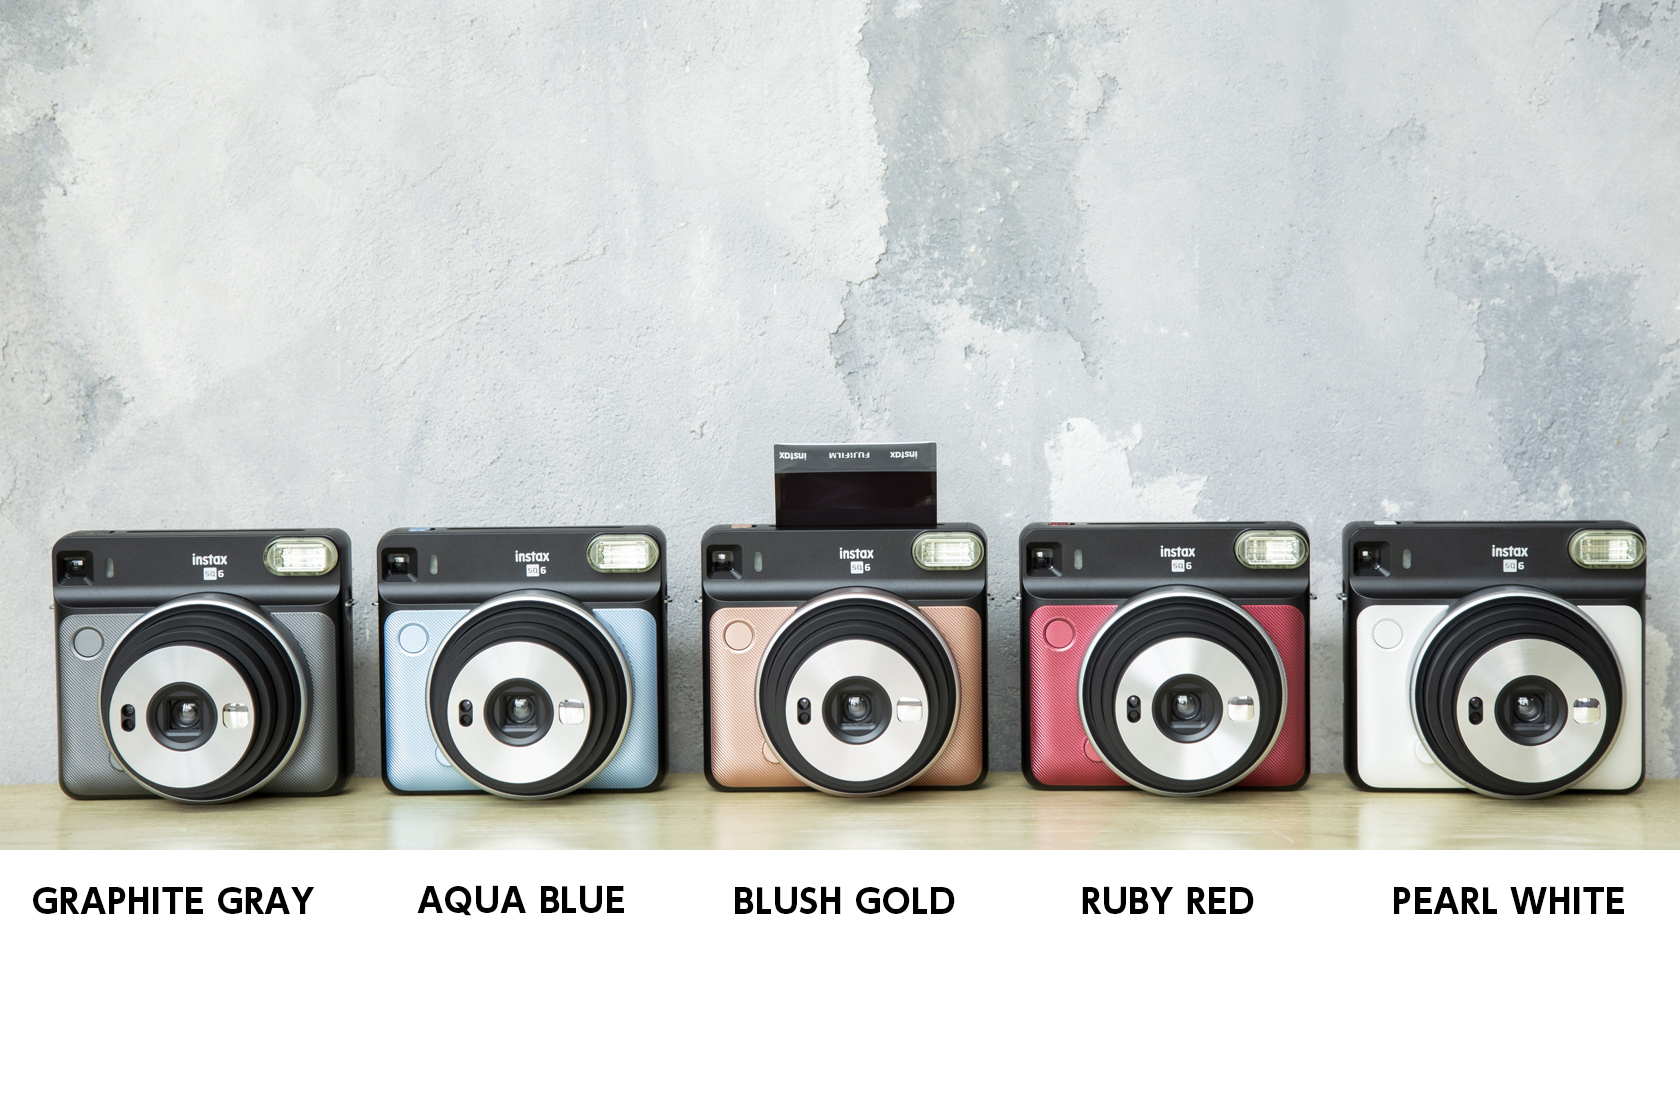 SQUARE SQ6 camera in all five colors